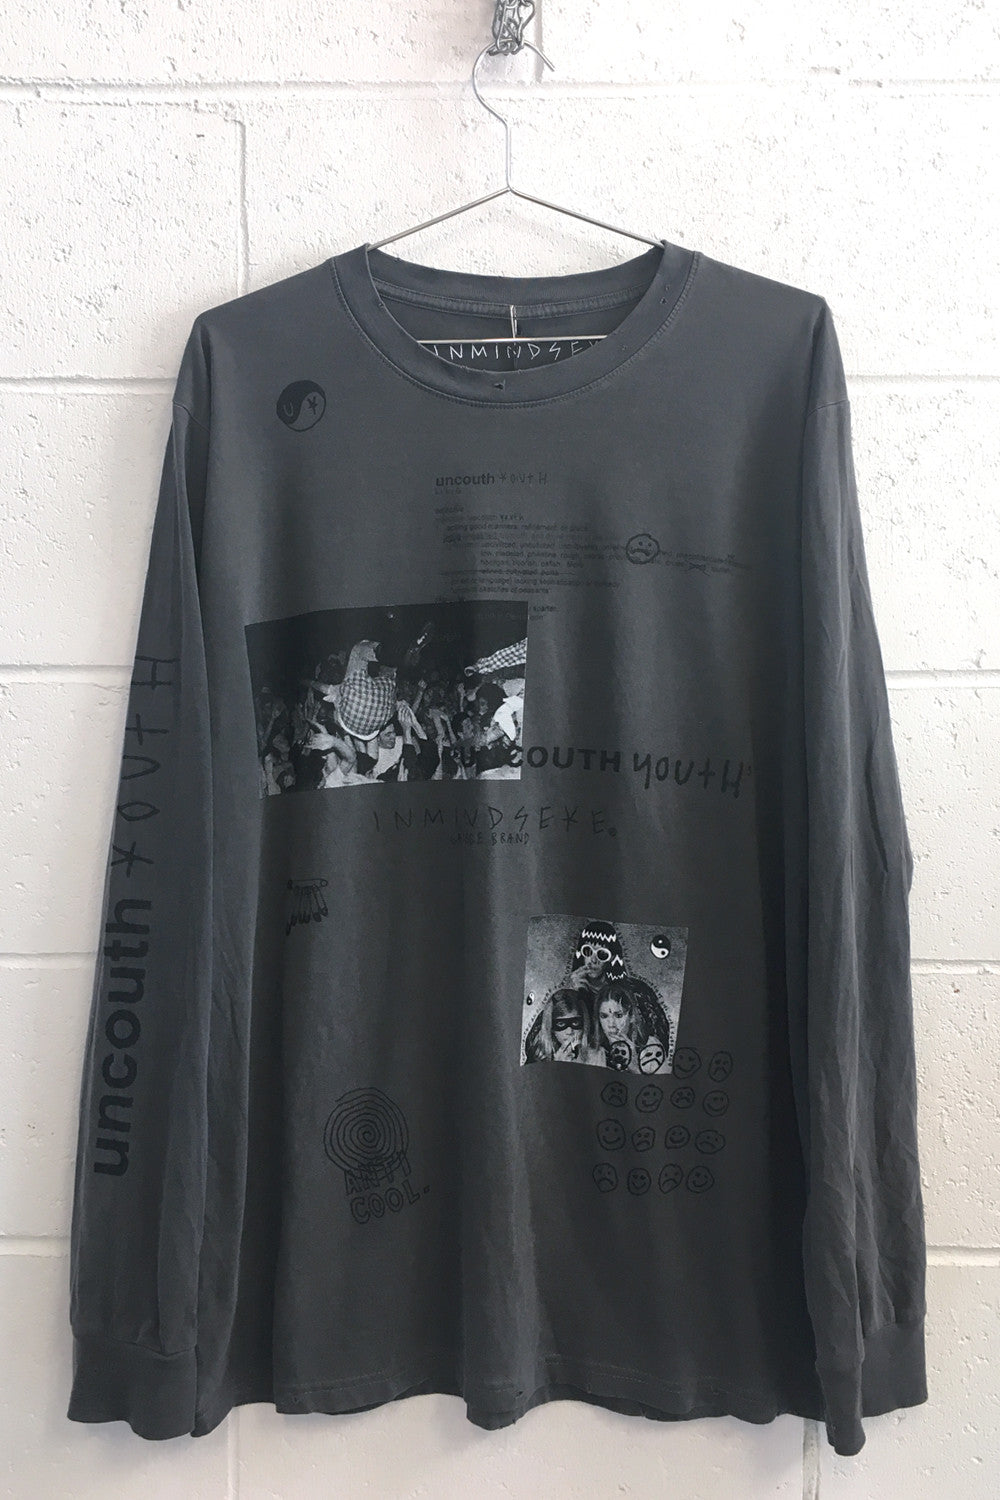 "UNCOUTH YOUTH L/S tee ""vintage black"""